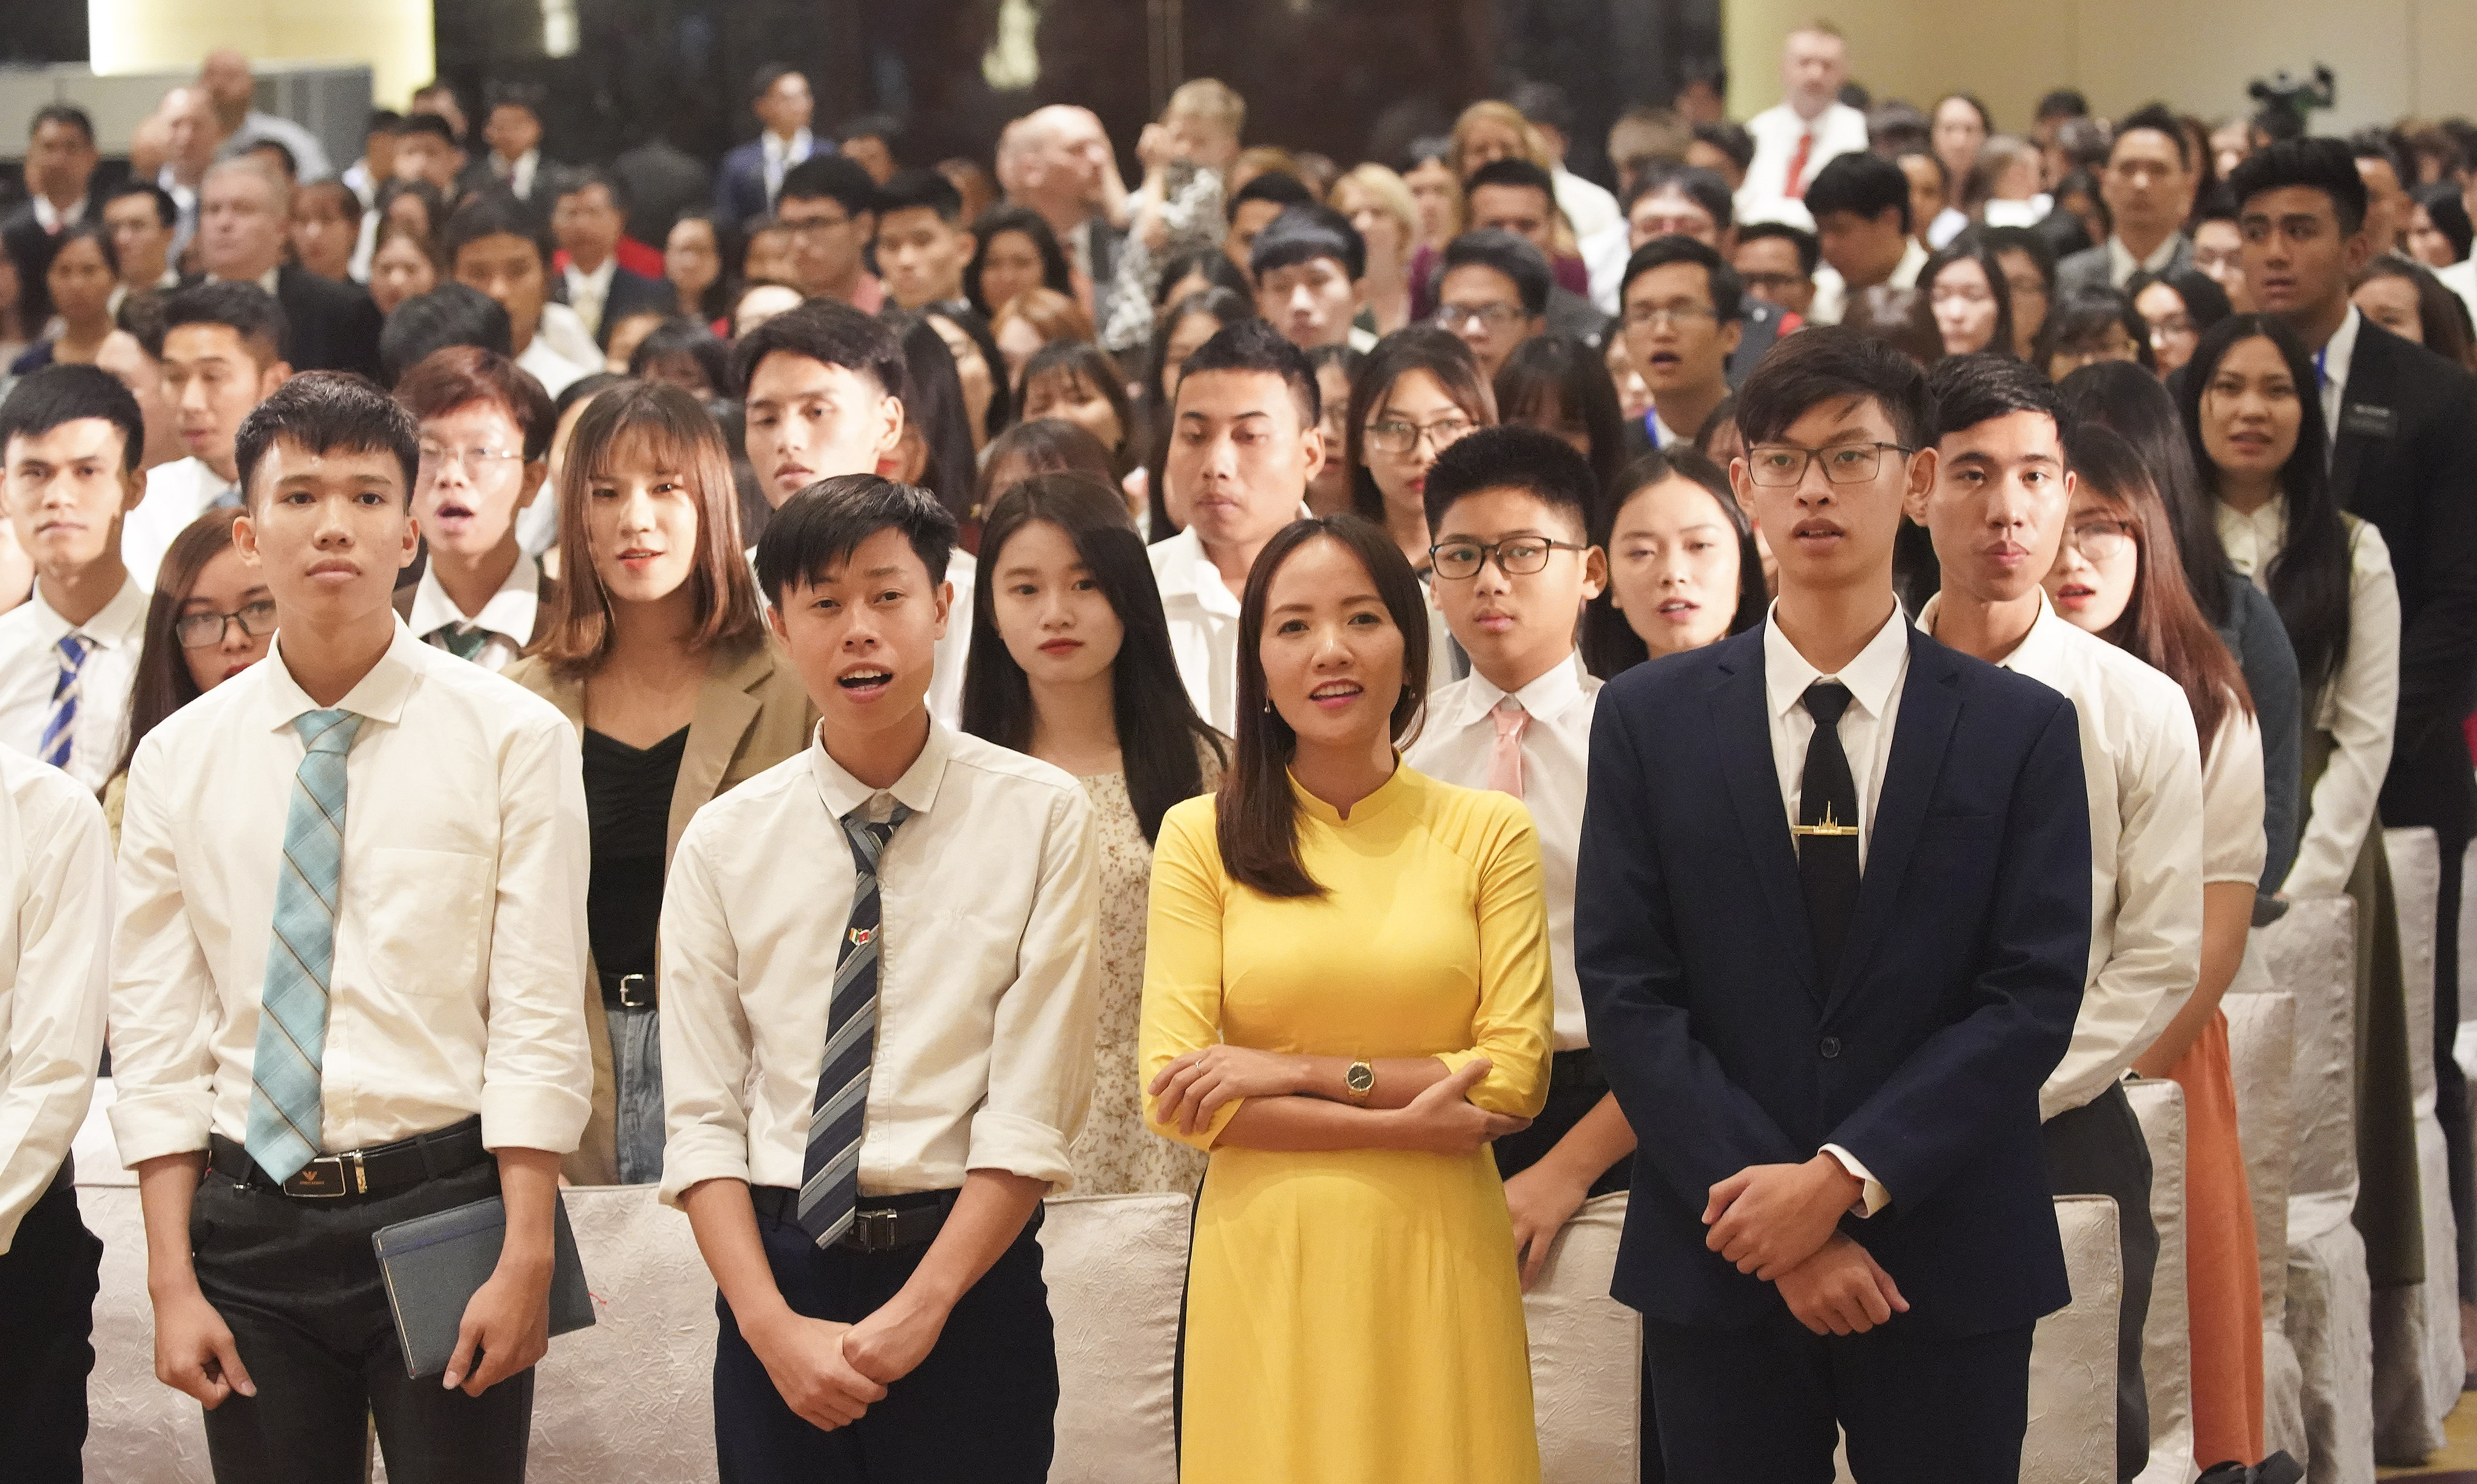 Attendees sing to President Russell M. Nelson of The Church of Jesus Christ of Latter-day Saints after a devotional in Hanoi, Vietnam, on Sunday, Nov. 17, 2019.